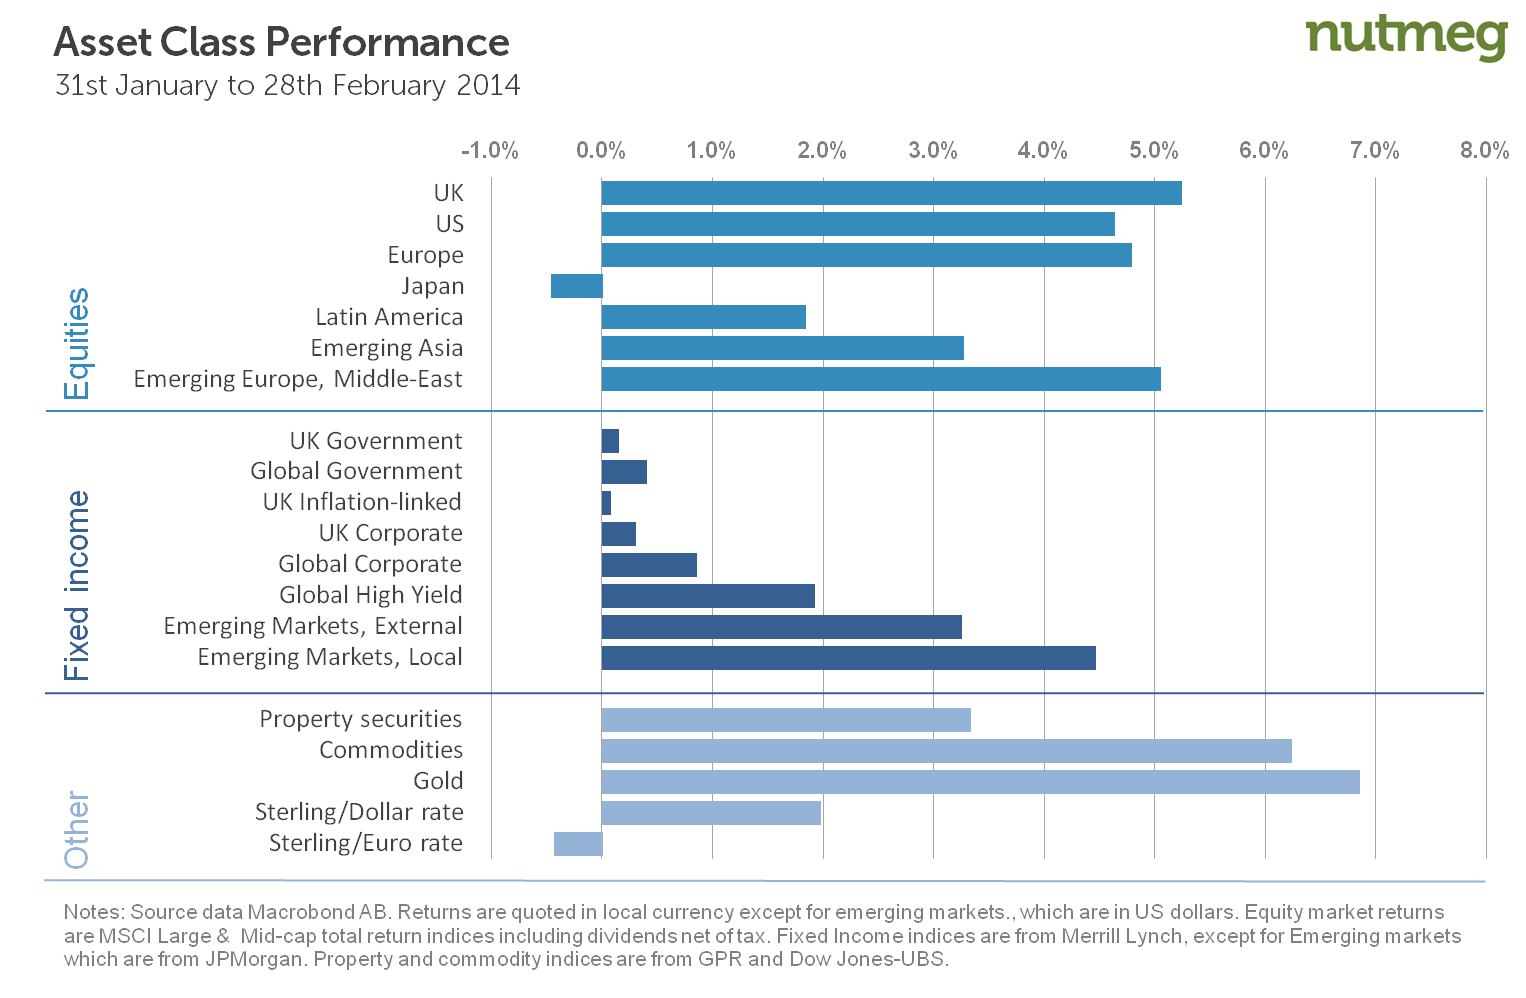 Performance of investment assets in February 2014